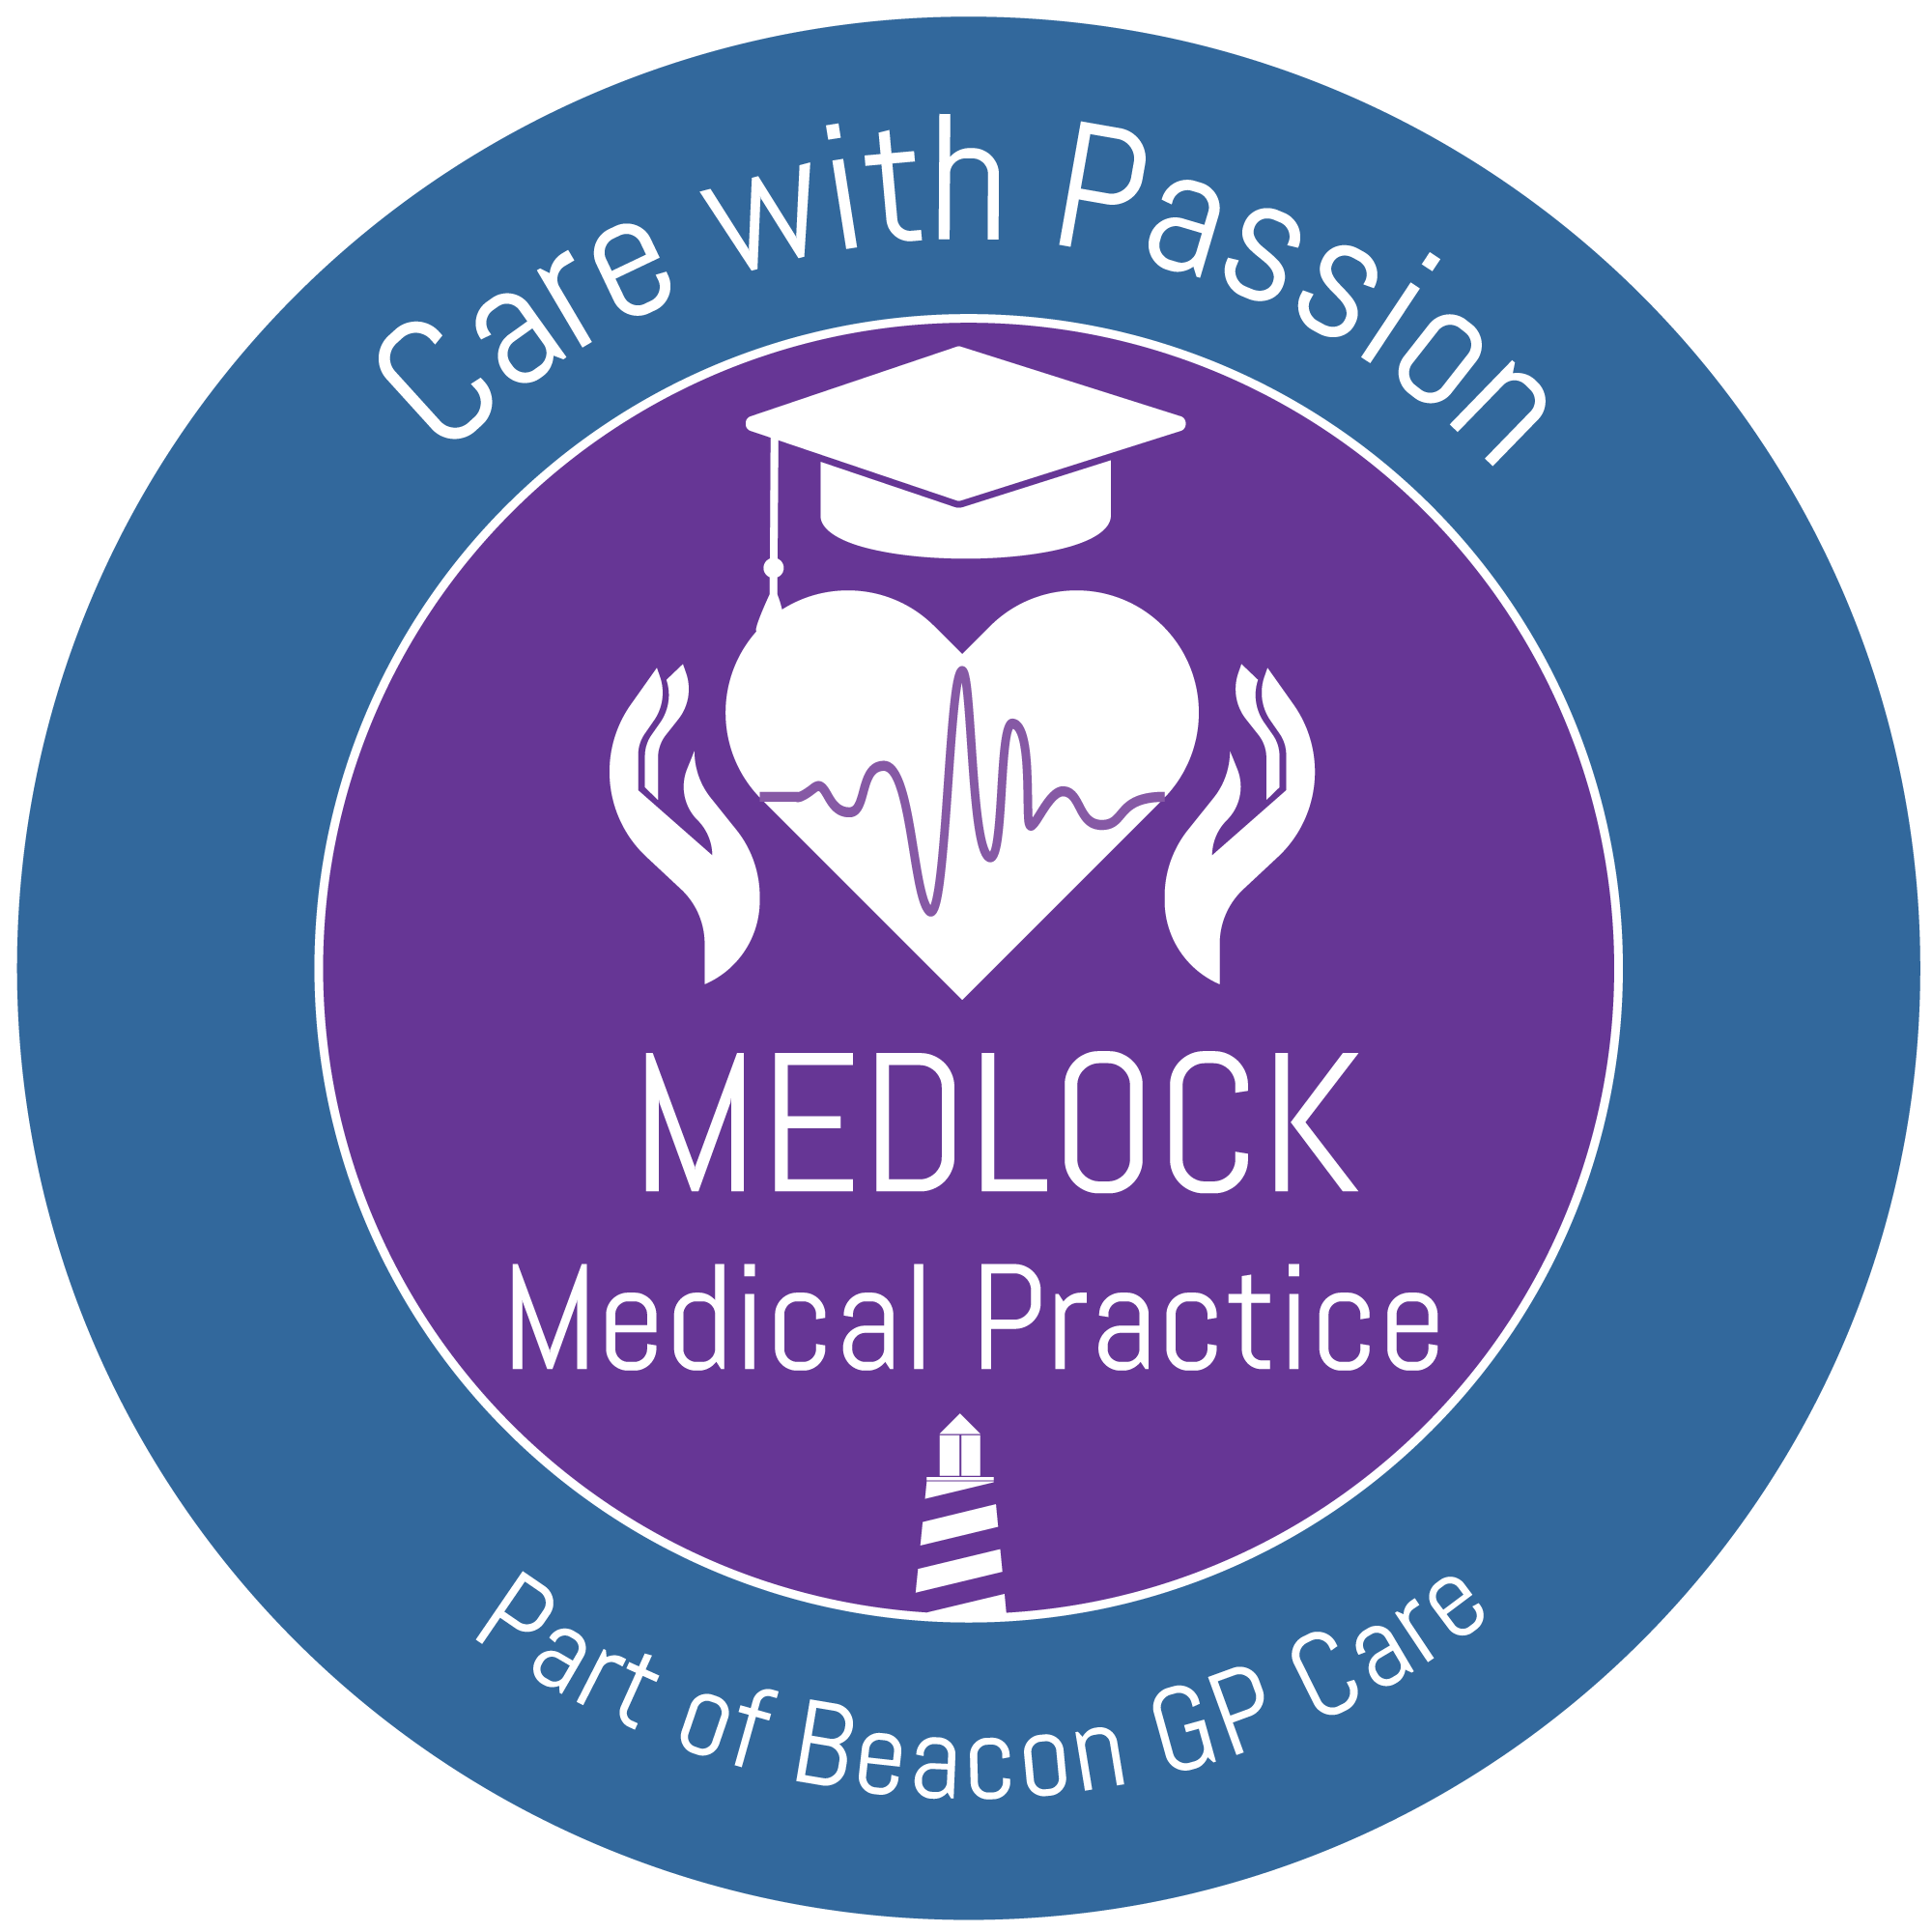 Medlock Medical Practice logo. Care with Passion. Part of Beacon GP Care